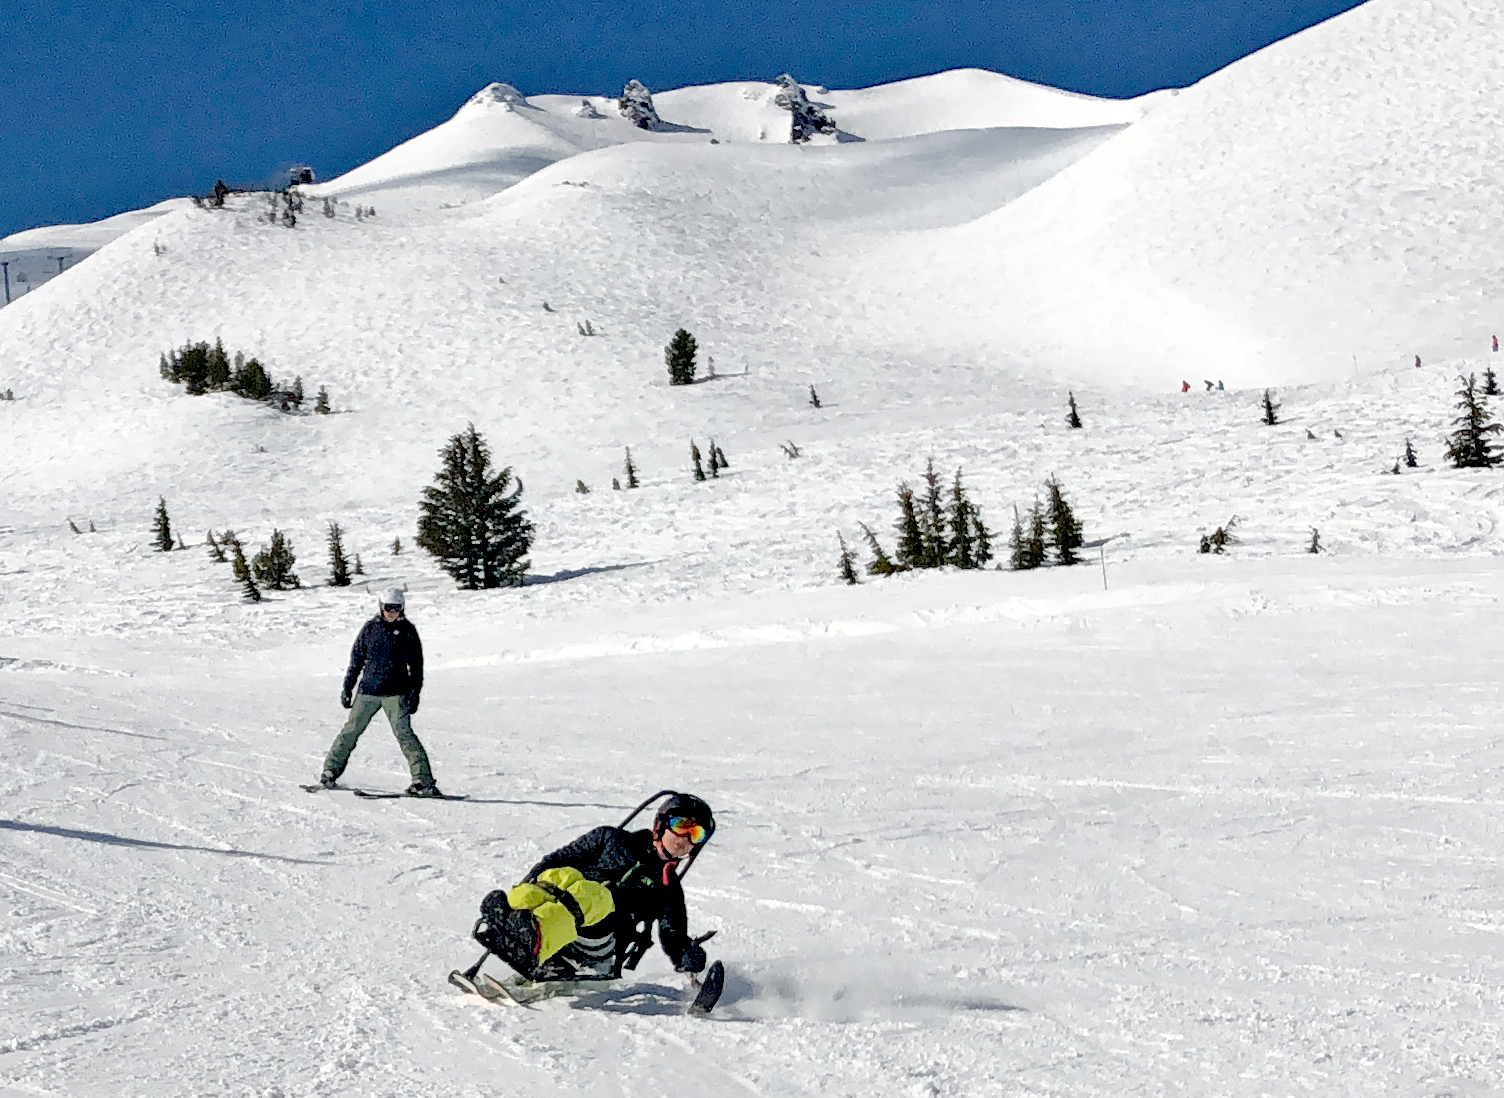 Ken skiing on a sunny day at Mt Bachelor